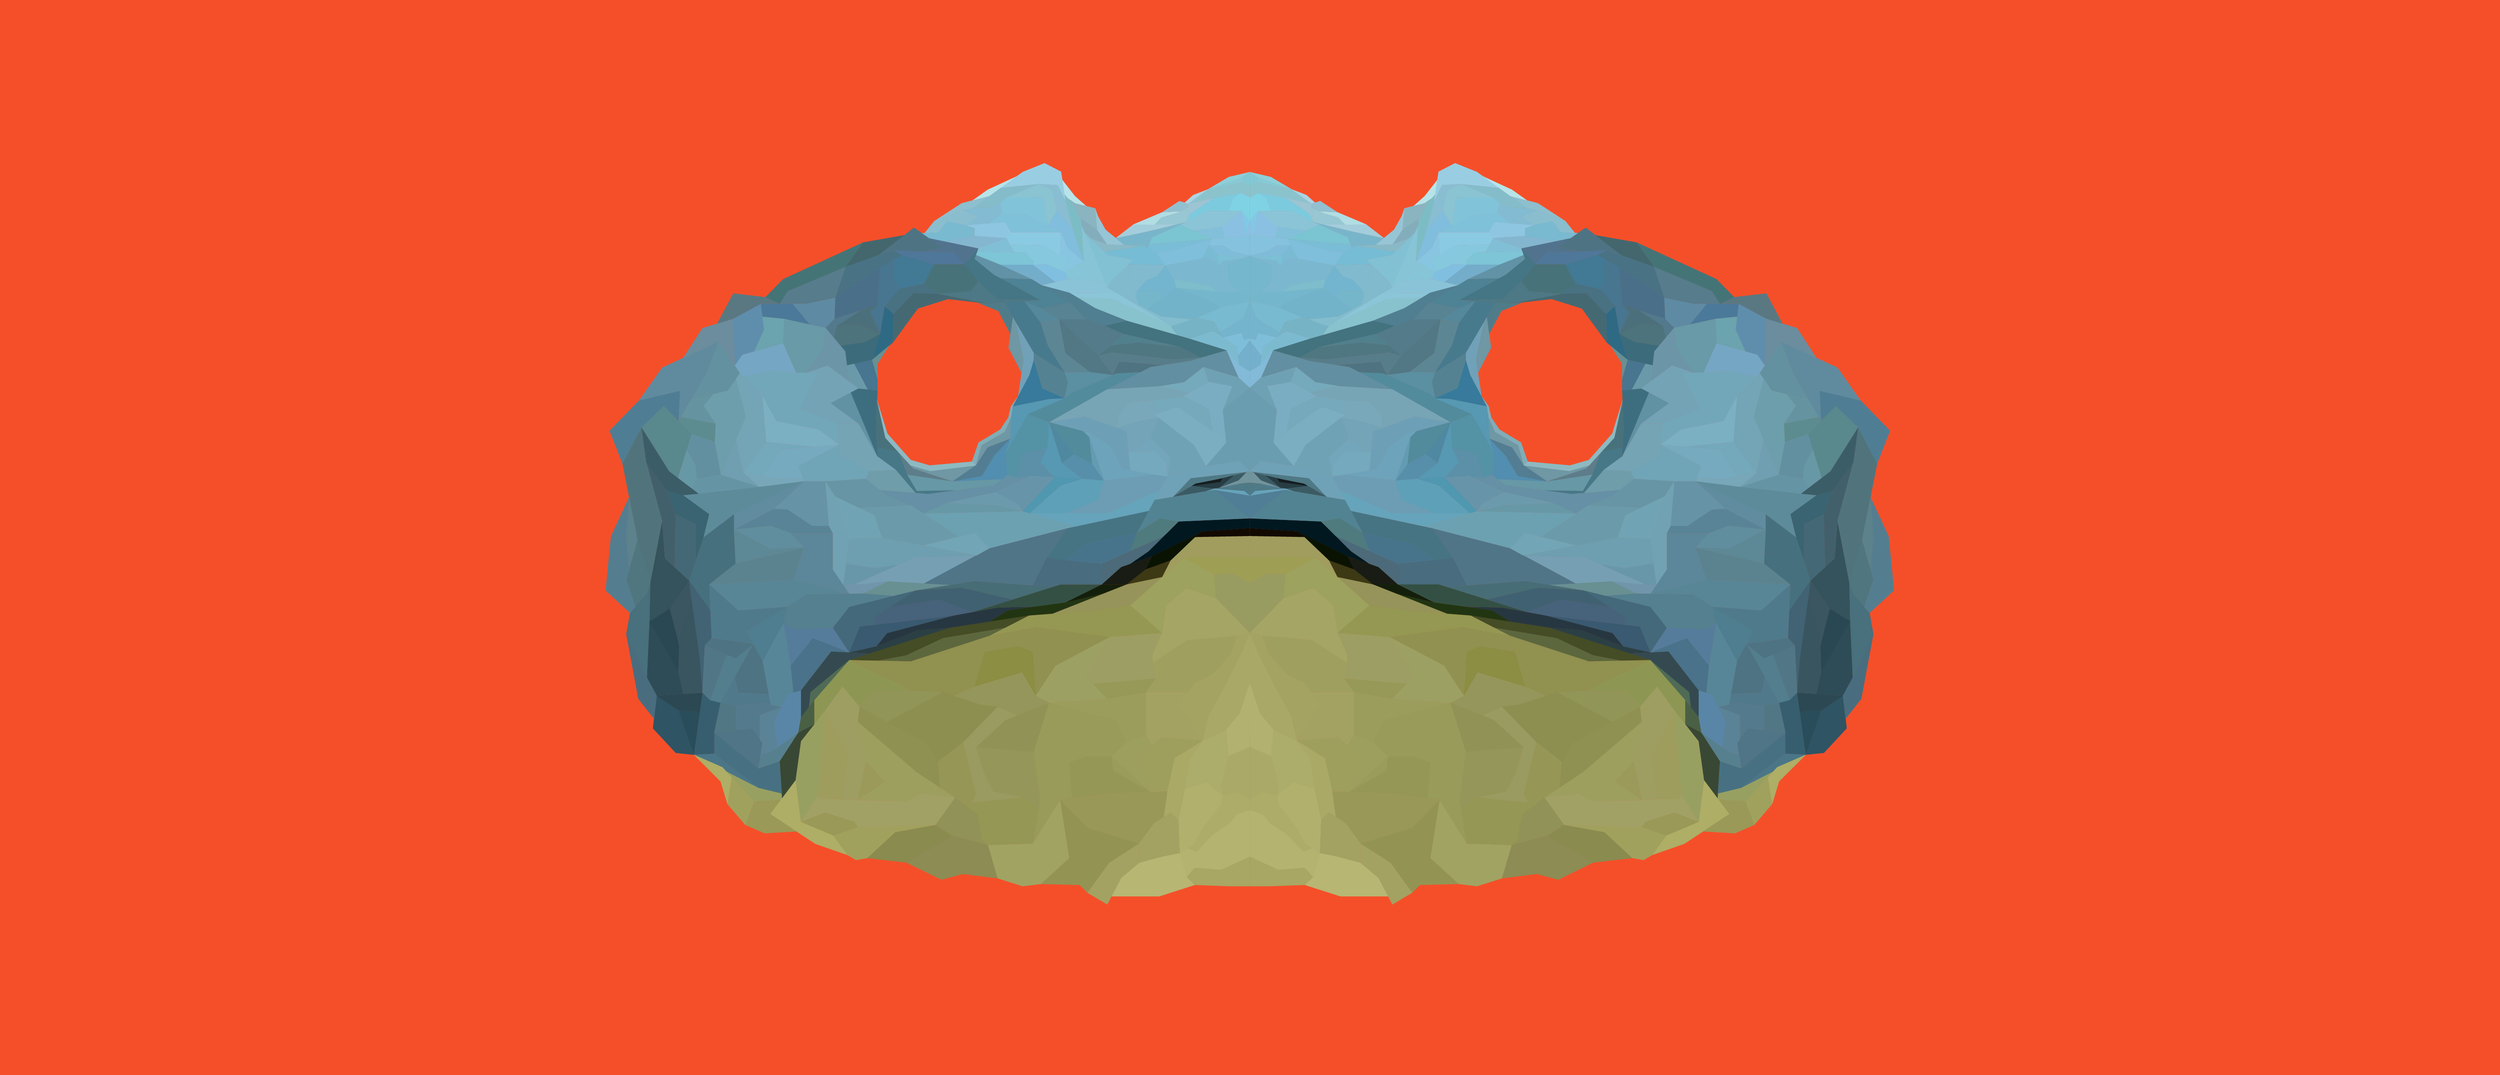 toad-01.png